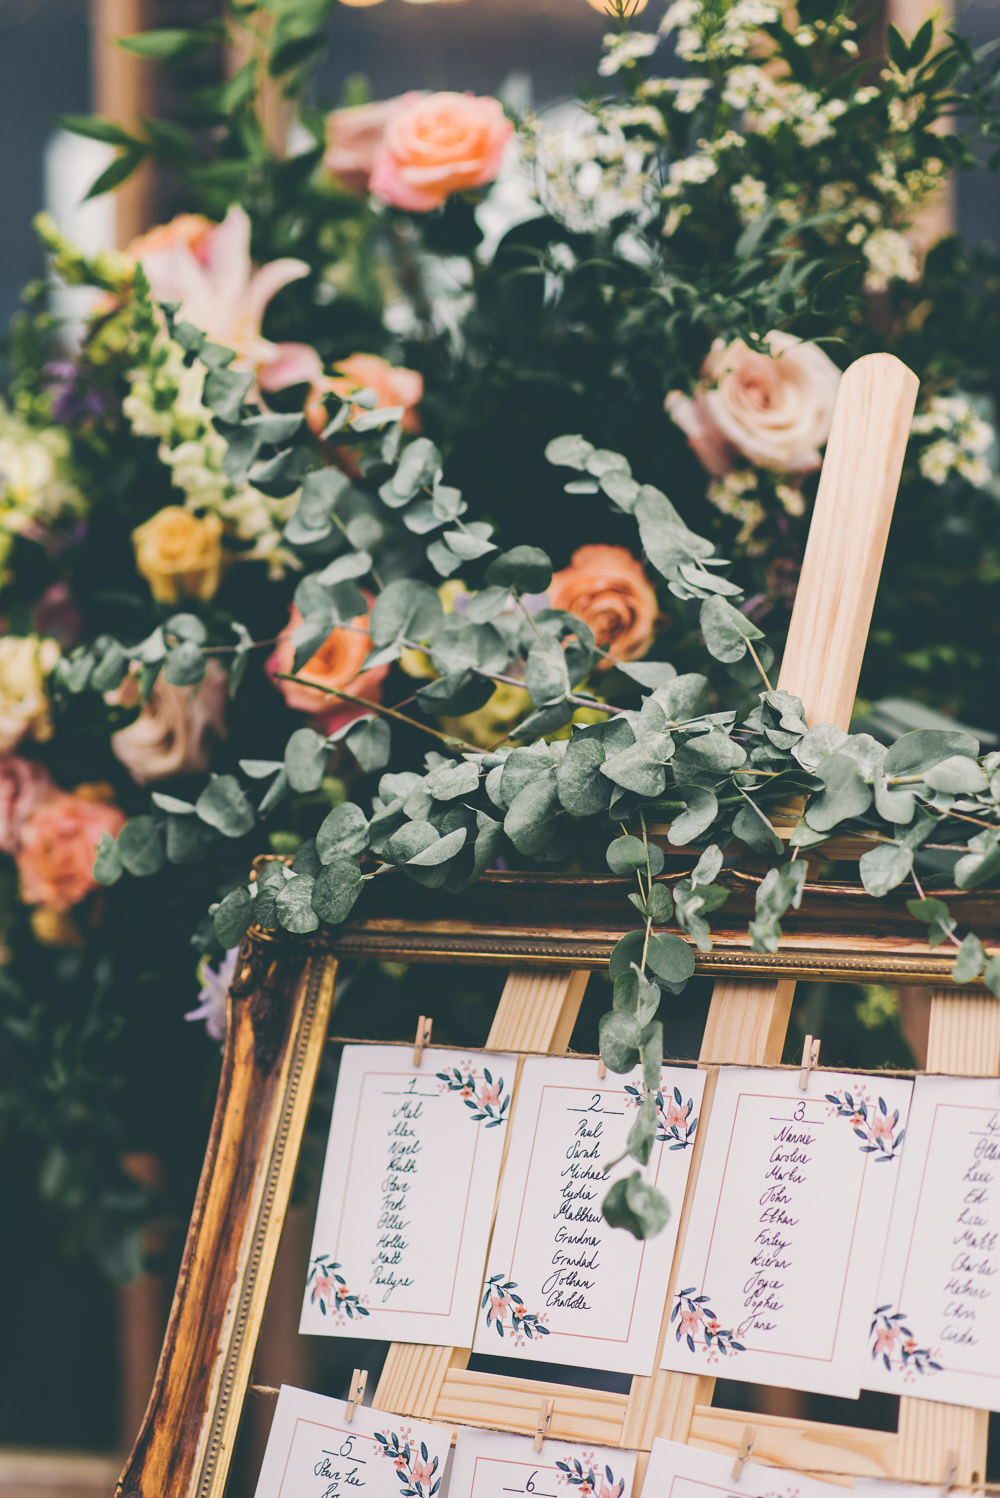 Table Plan Seating Chart Frame Pegs Twine Greenery Foliage Eucalyptus High Billinghurst Farm Wedding Larissa Joice Photography